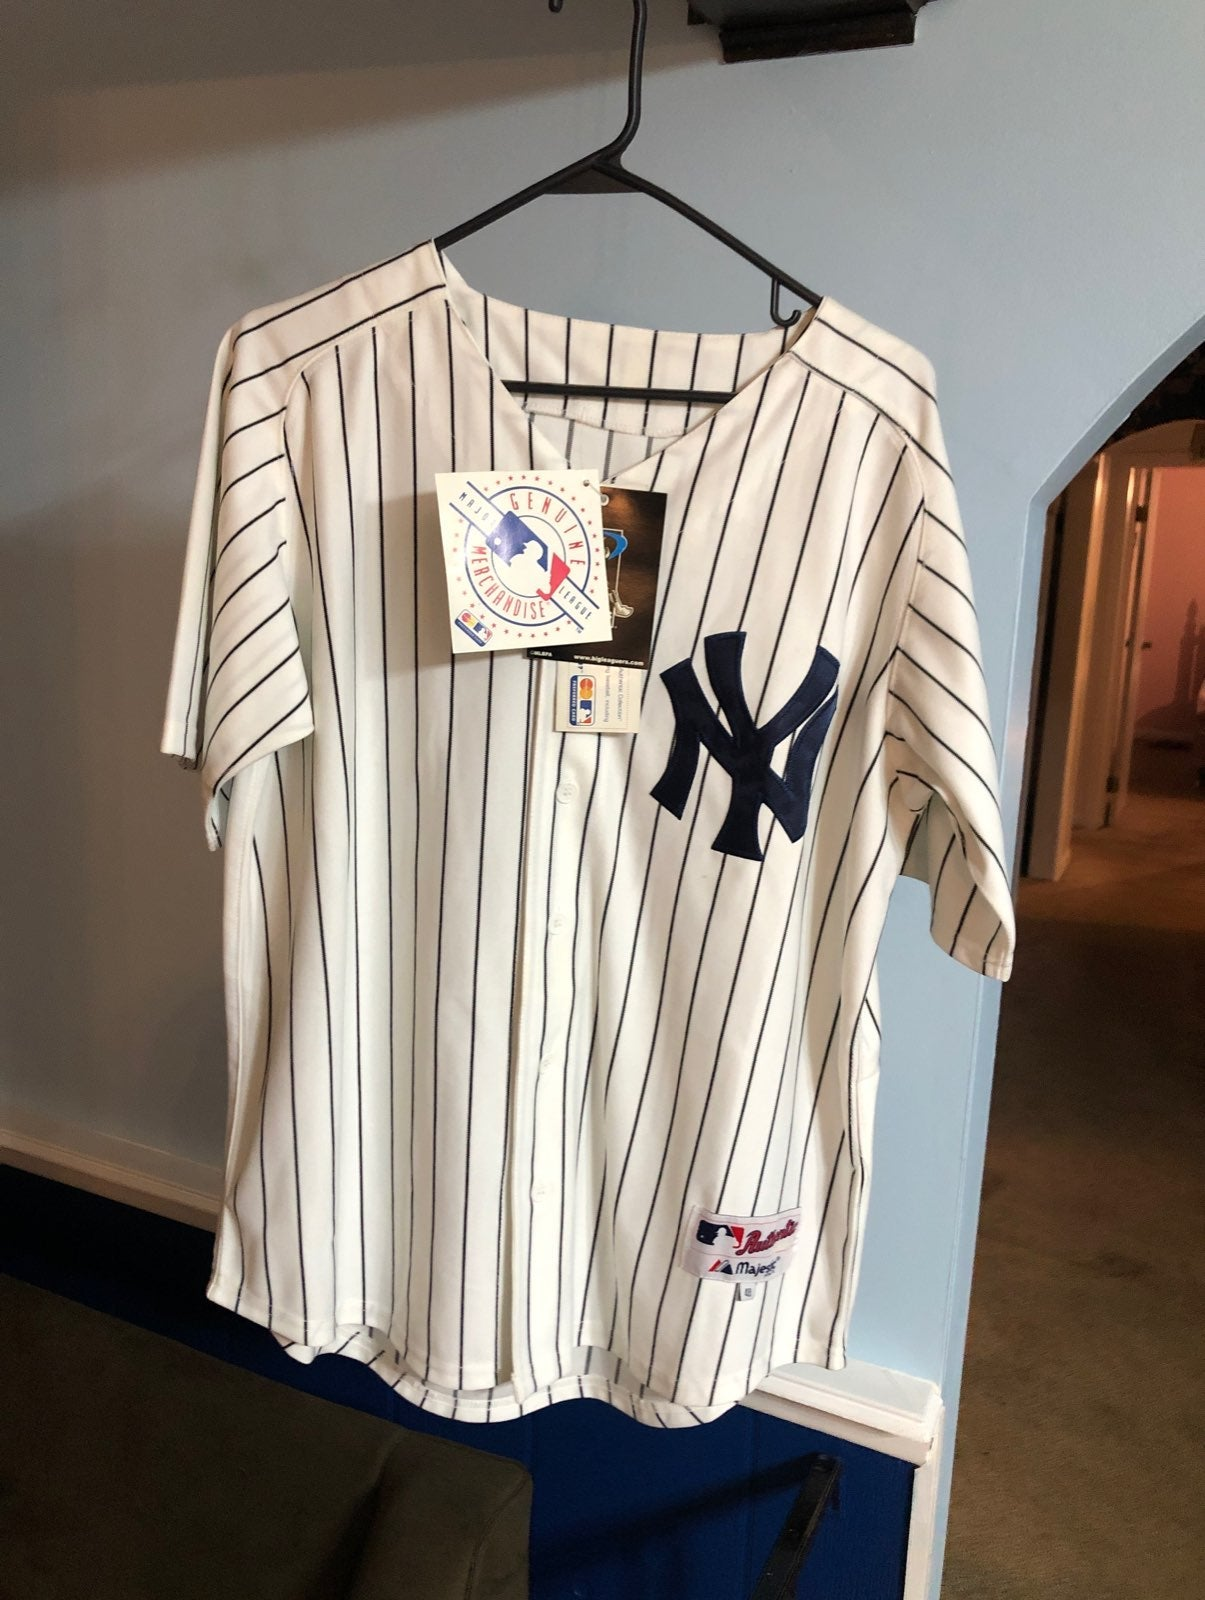 Yankees Babe Ruth Opening Day 09 Jersey